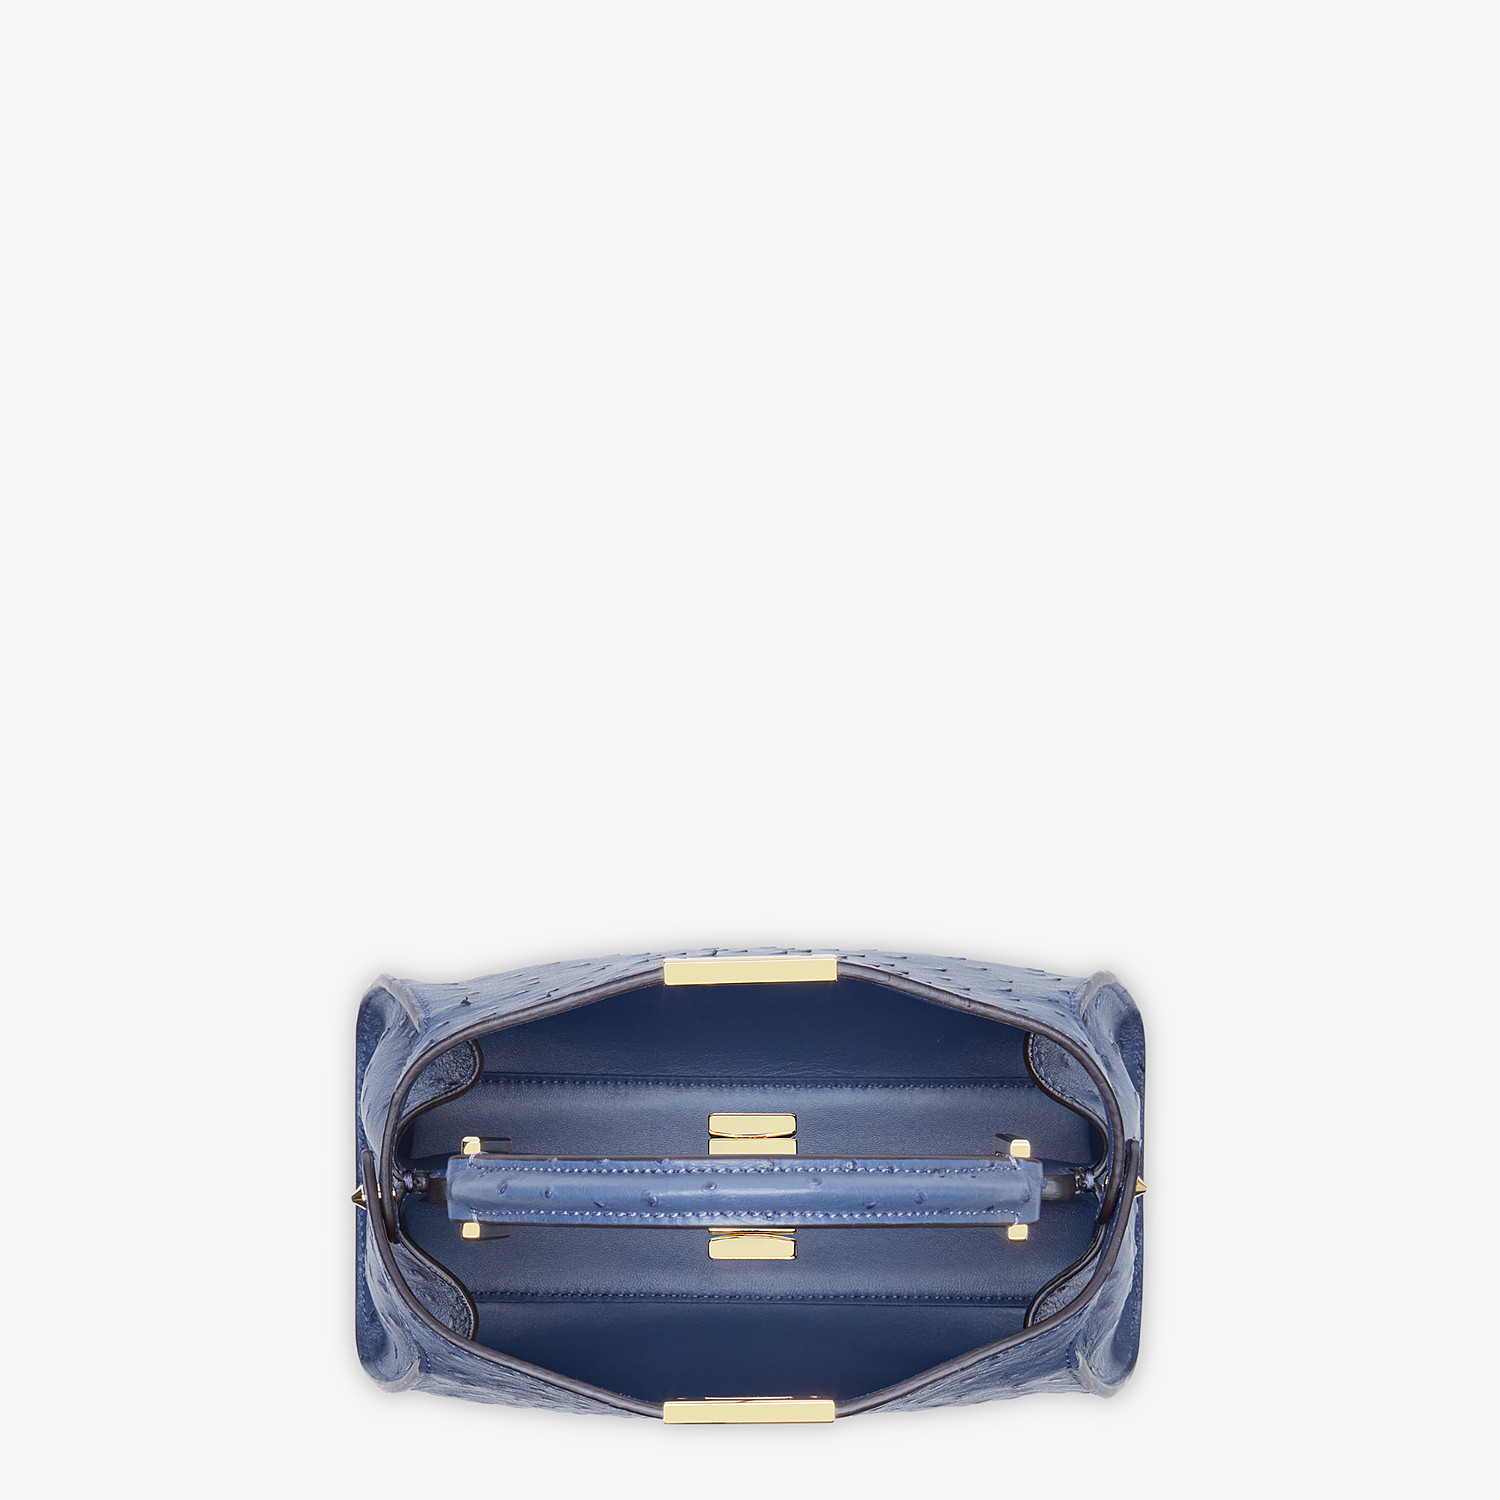 FENDI PEEKABOO ICONIC ESSENTIALLY - Blue ostrich leather bag - view 4 detail